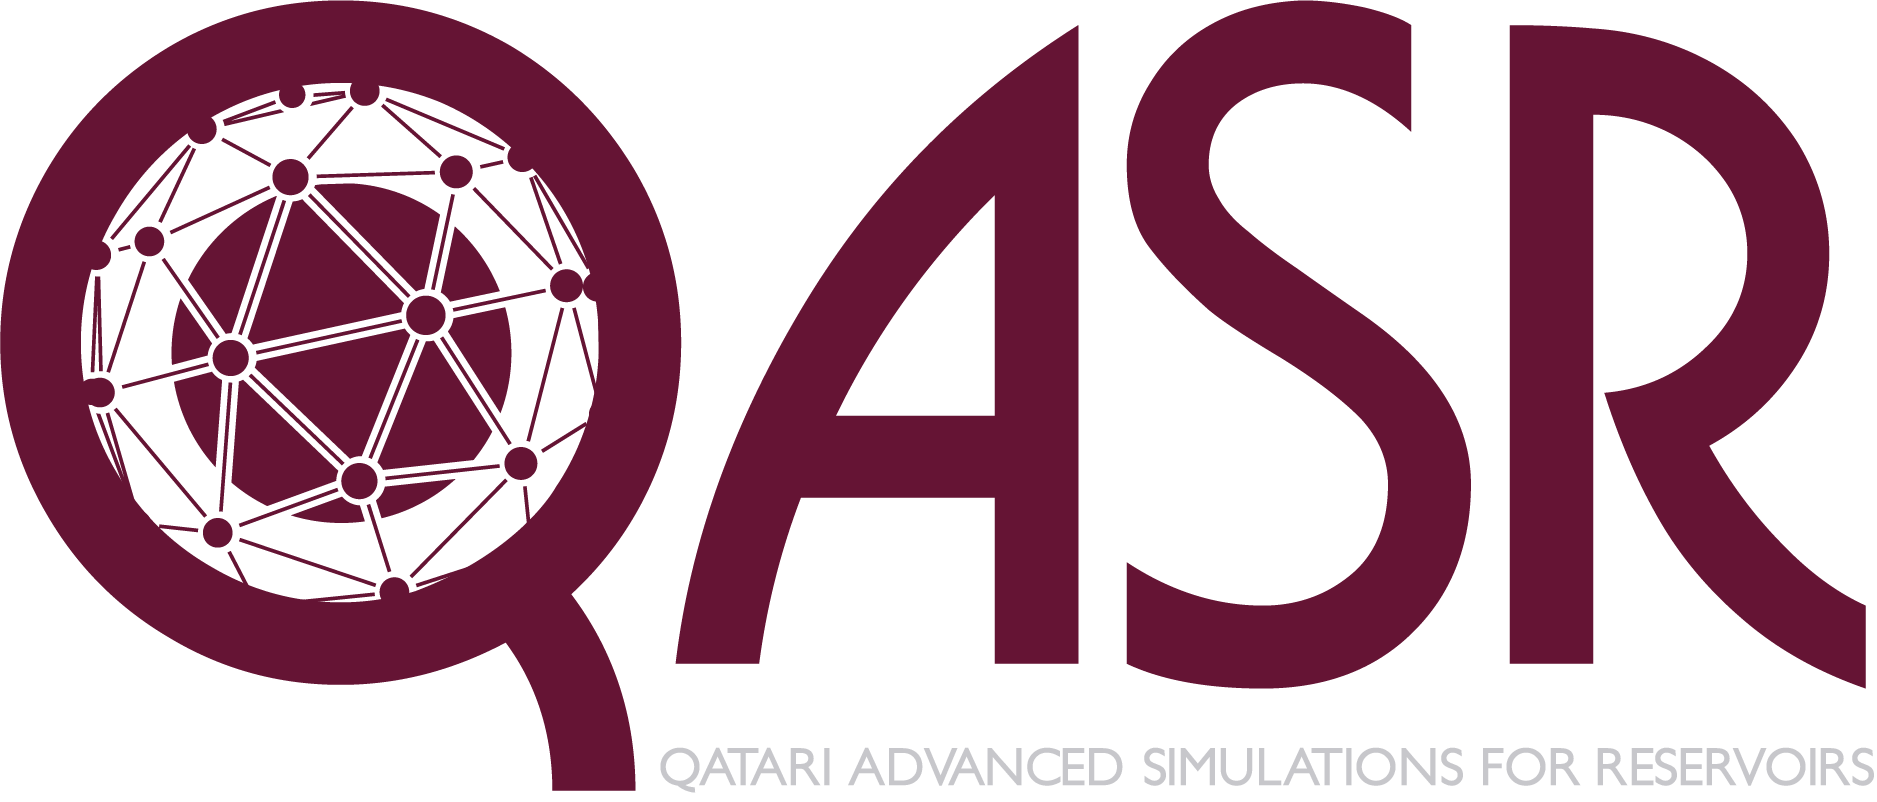 QASR- Qatari Advanced Simulations for Reservoirs